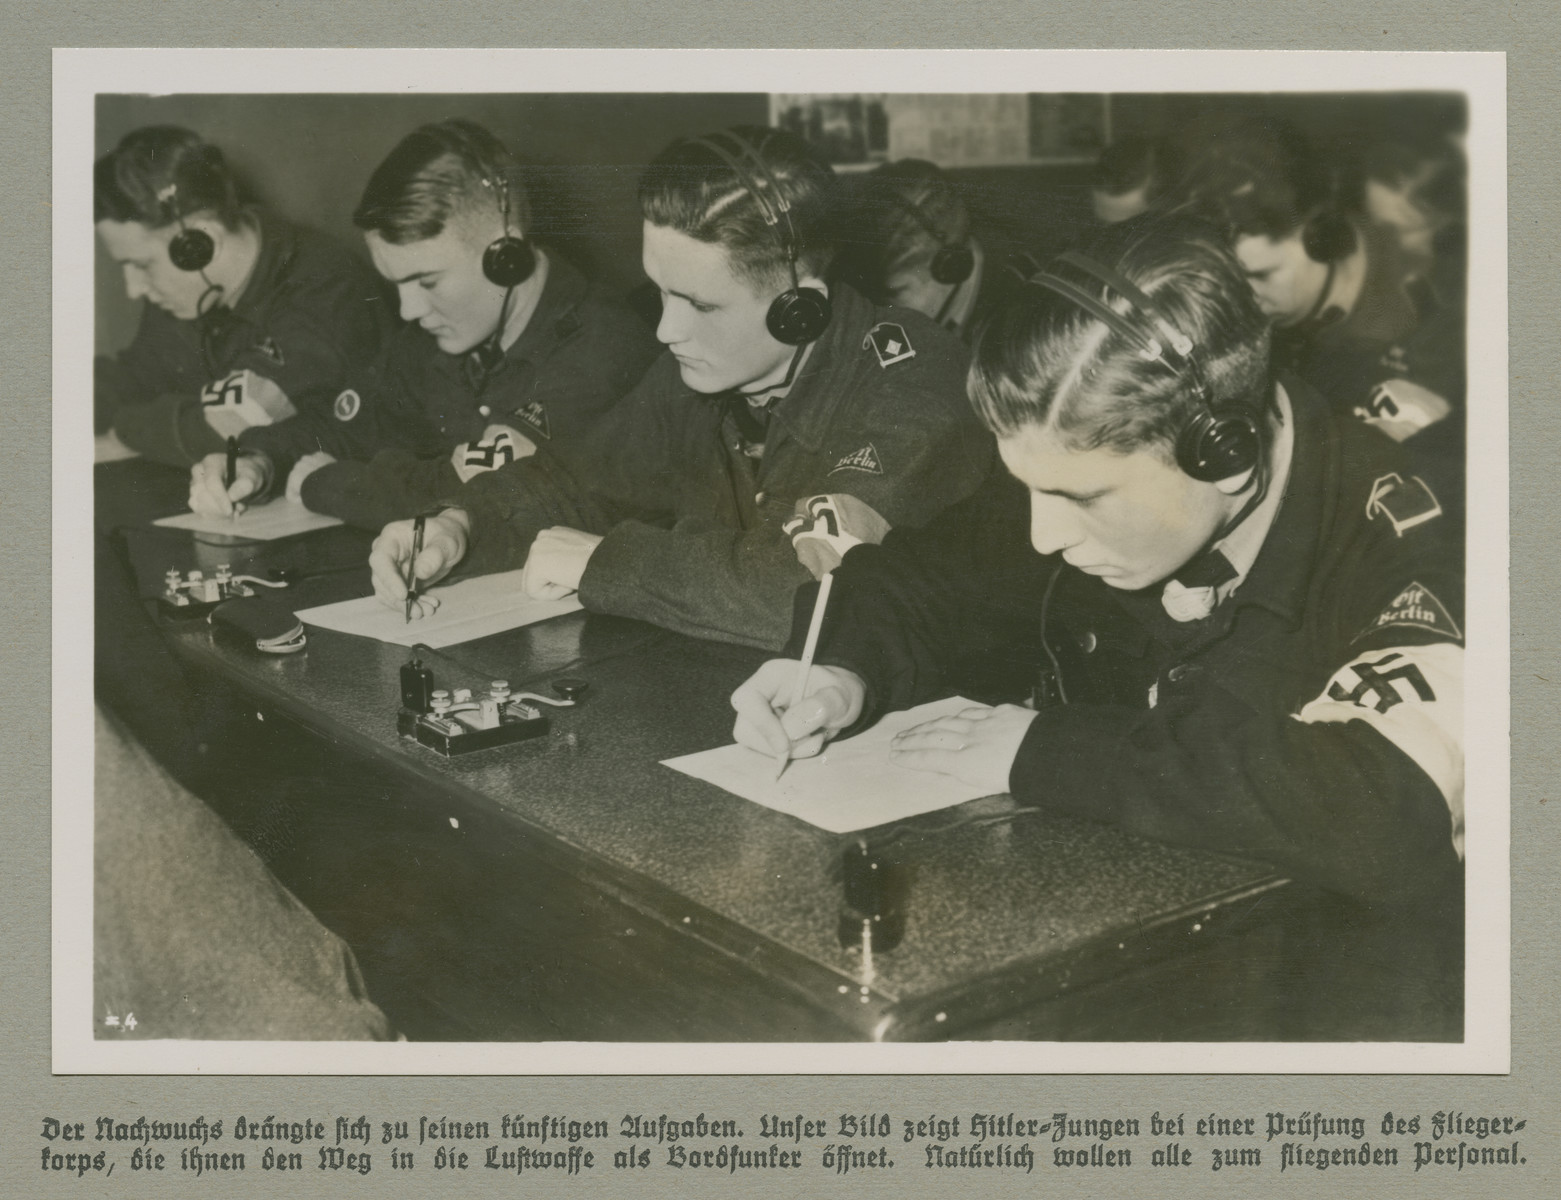 Hitler Youth members are photographed during a radio operator's exam.   Original captions reads: The trainee commits himself to his future responsibilities. Our image depicts Hitler Youths during an Air Corps exam that will clear the path to join the Luftwaffe as a radio operator. Naturally all want to join flying crews.